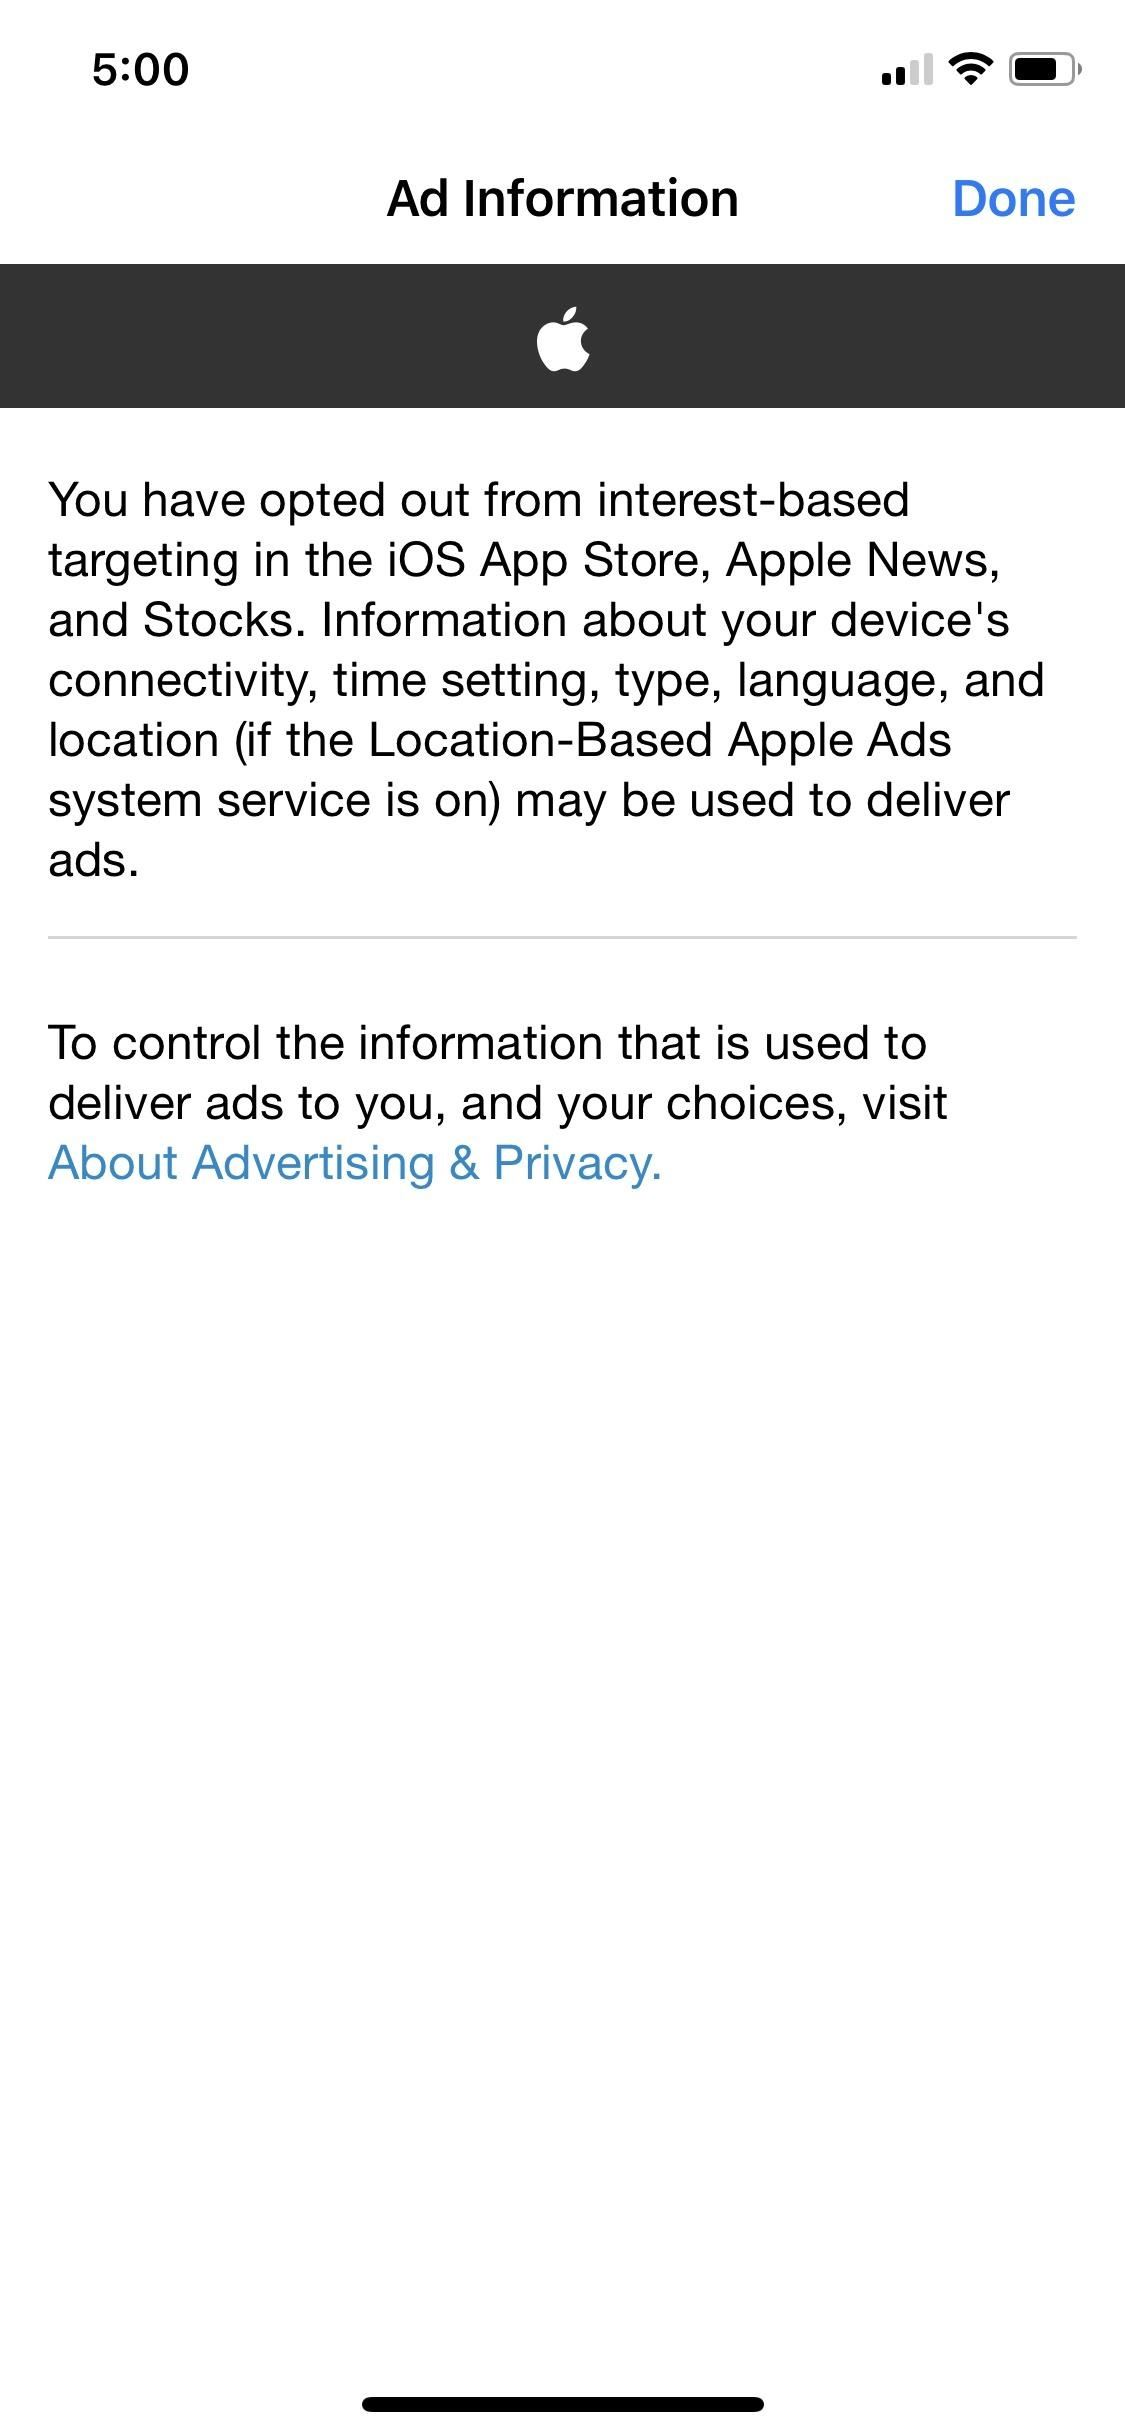 Protect Your Data from Being Used in Targeted Advertisements on iPhone